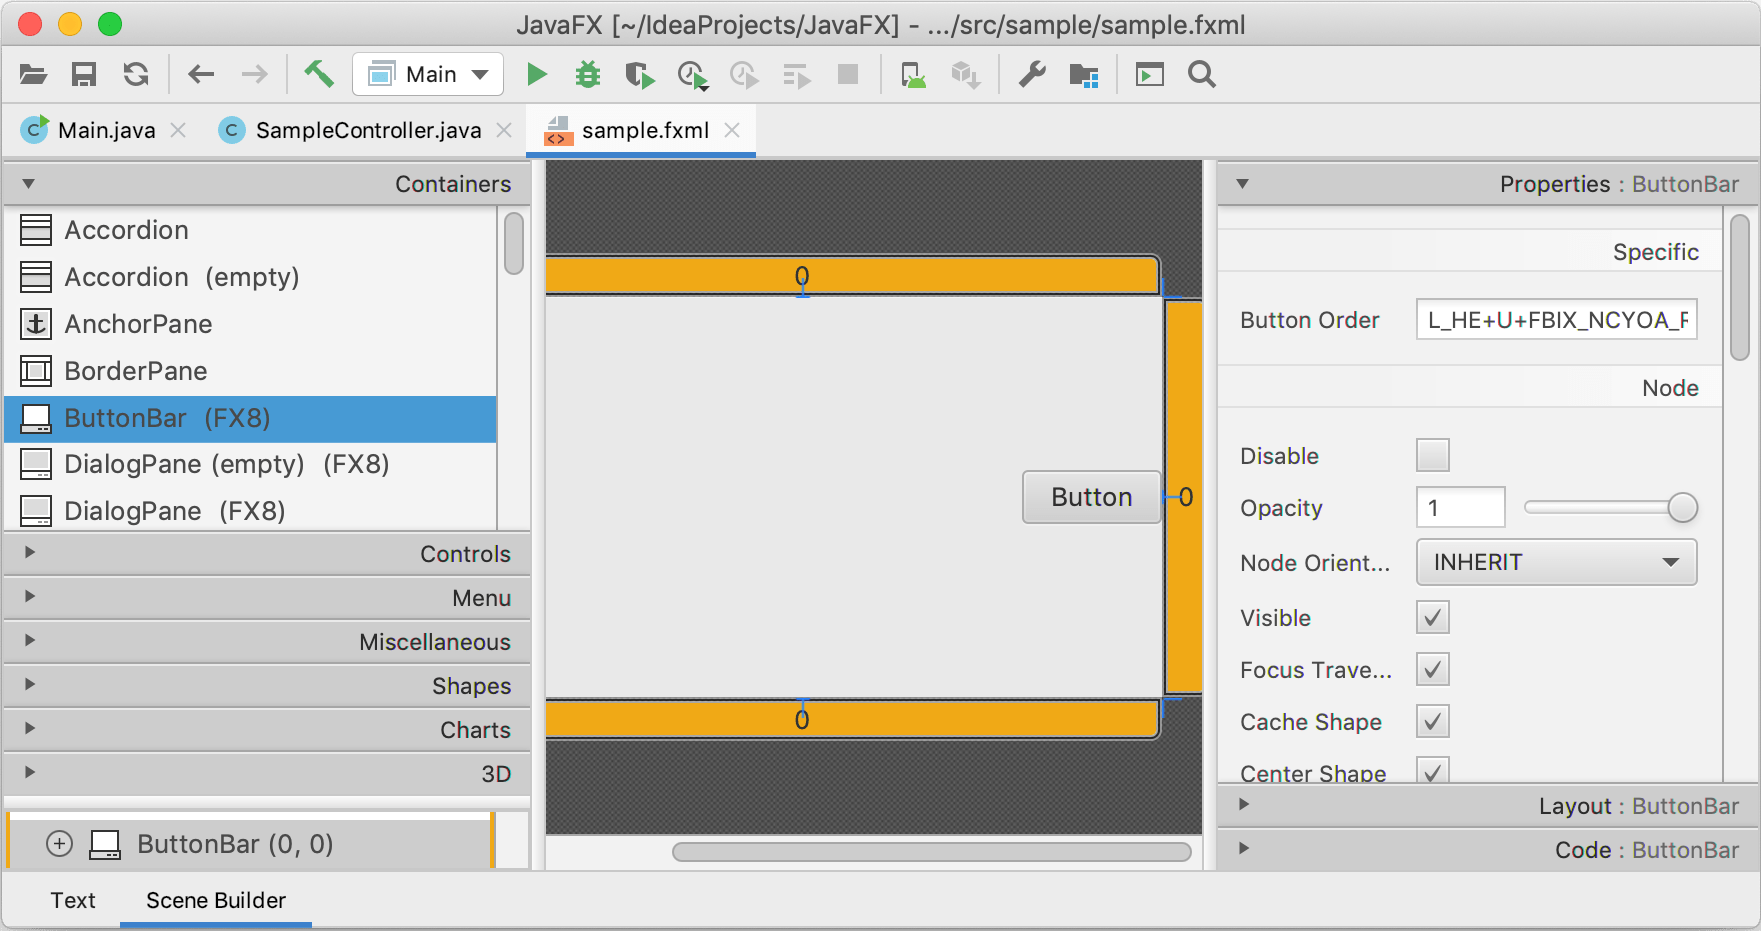 An .fxml file opened in Scene Builder in the IDE